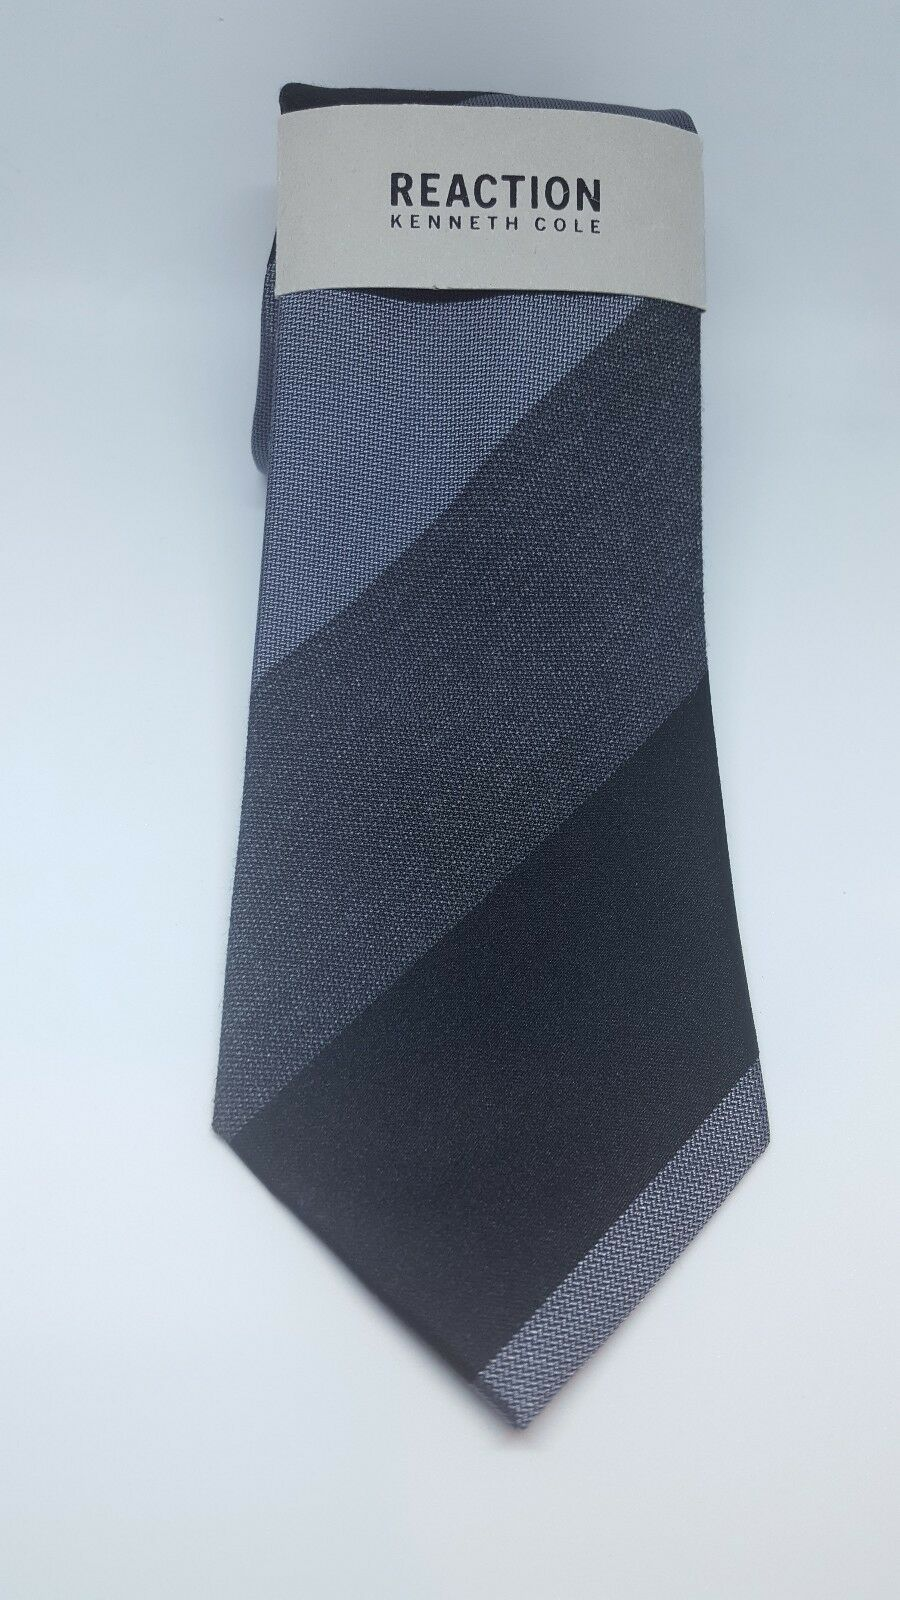 NEW Reaction Kenneth Cole Men's Classic Neck Tie Highland Stripe Black/Gray